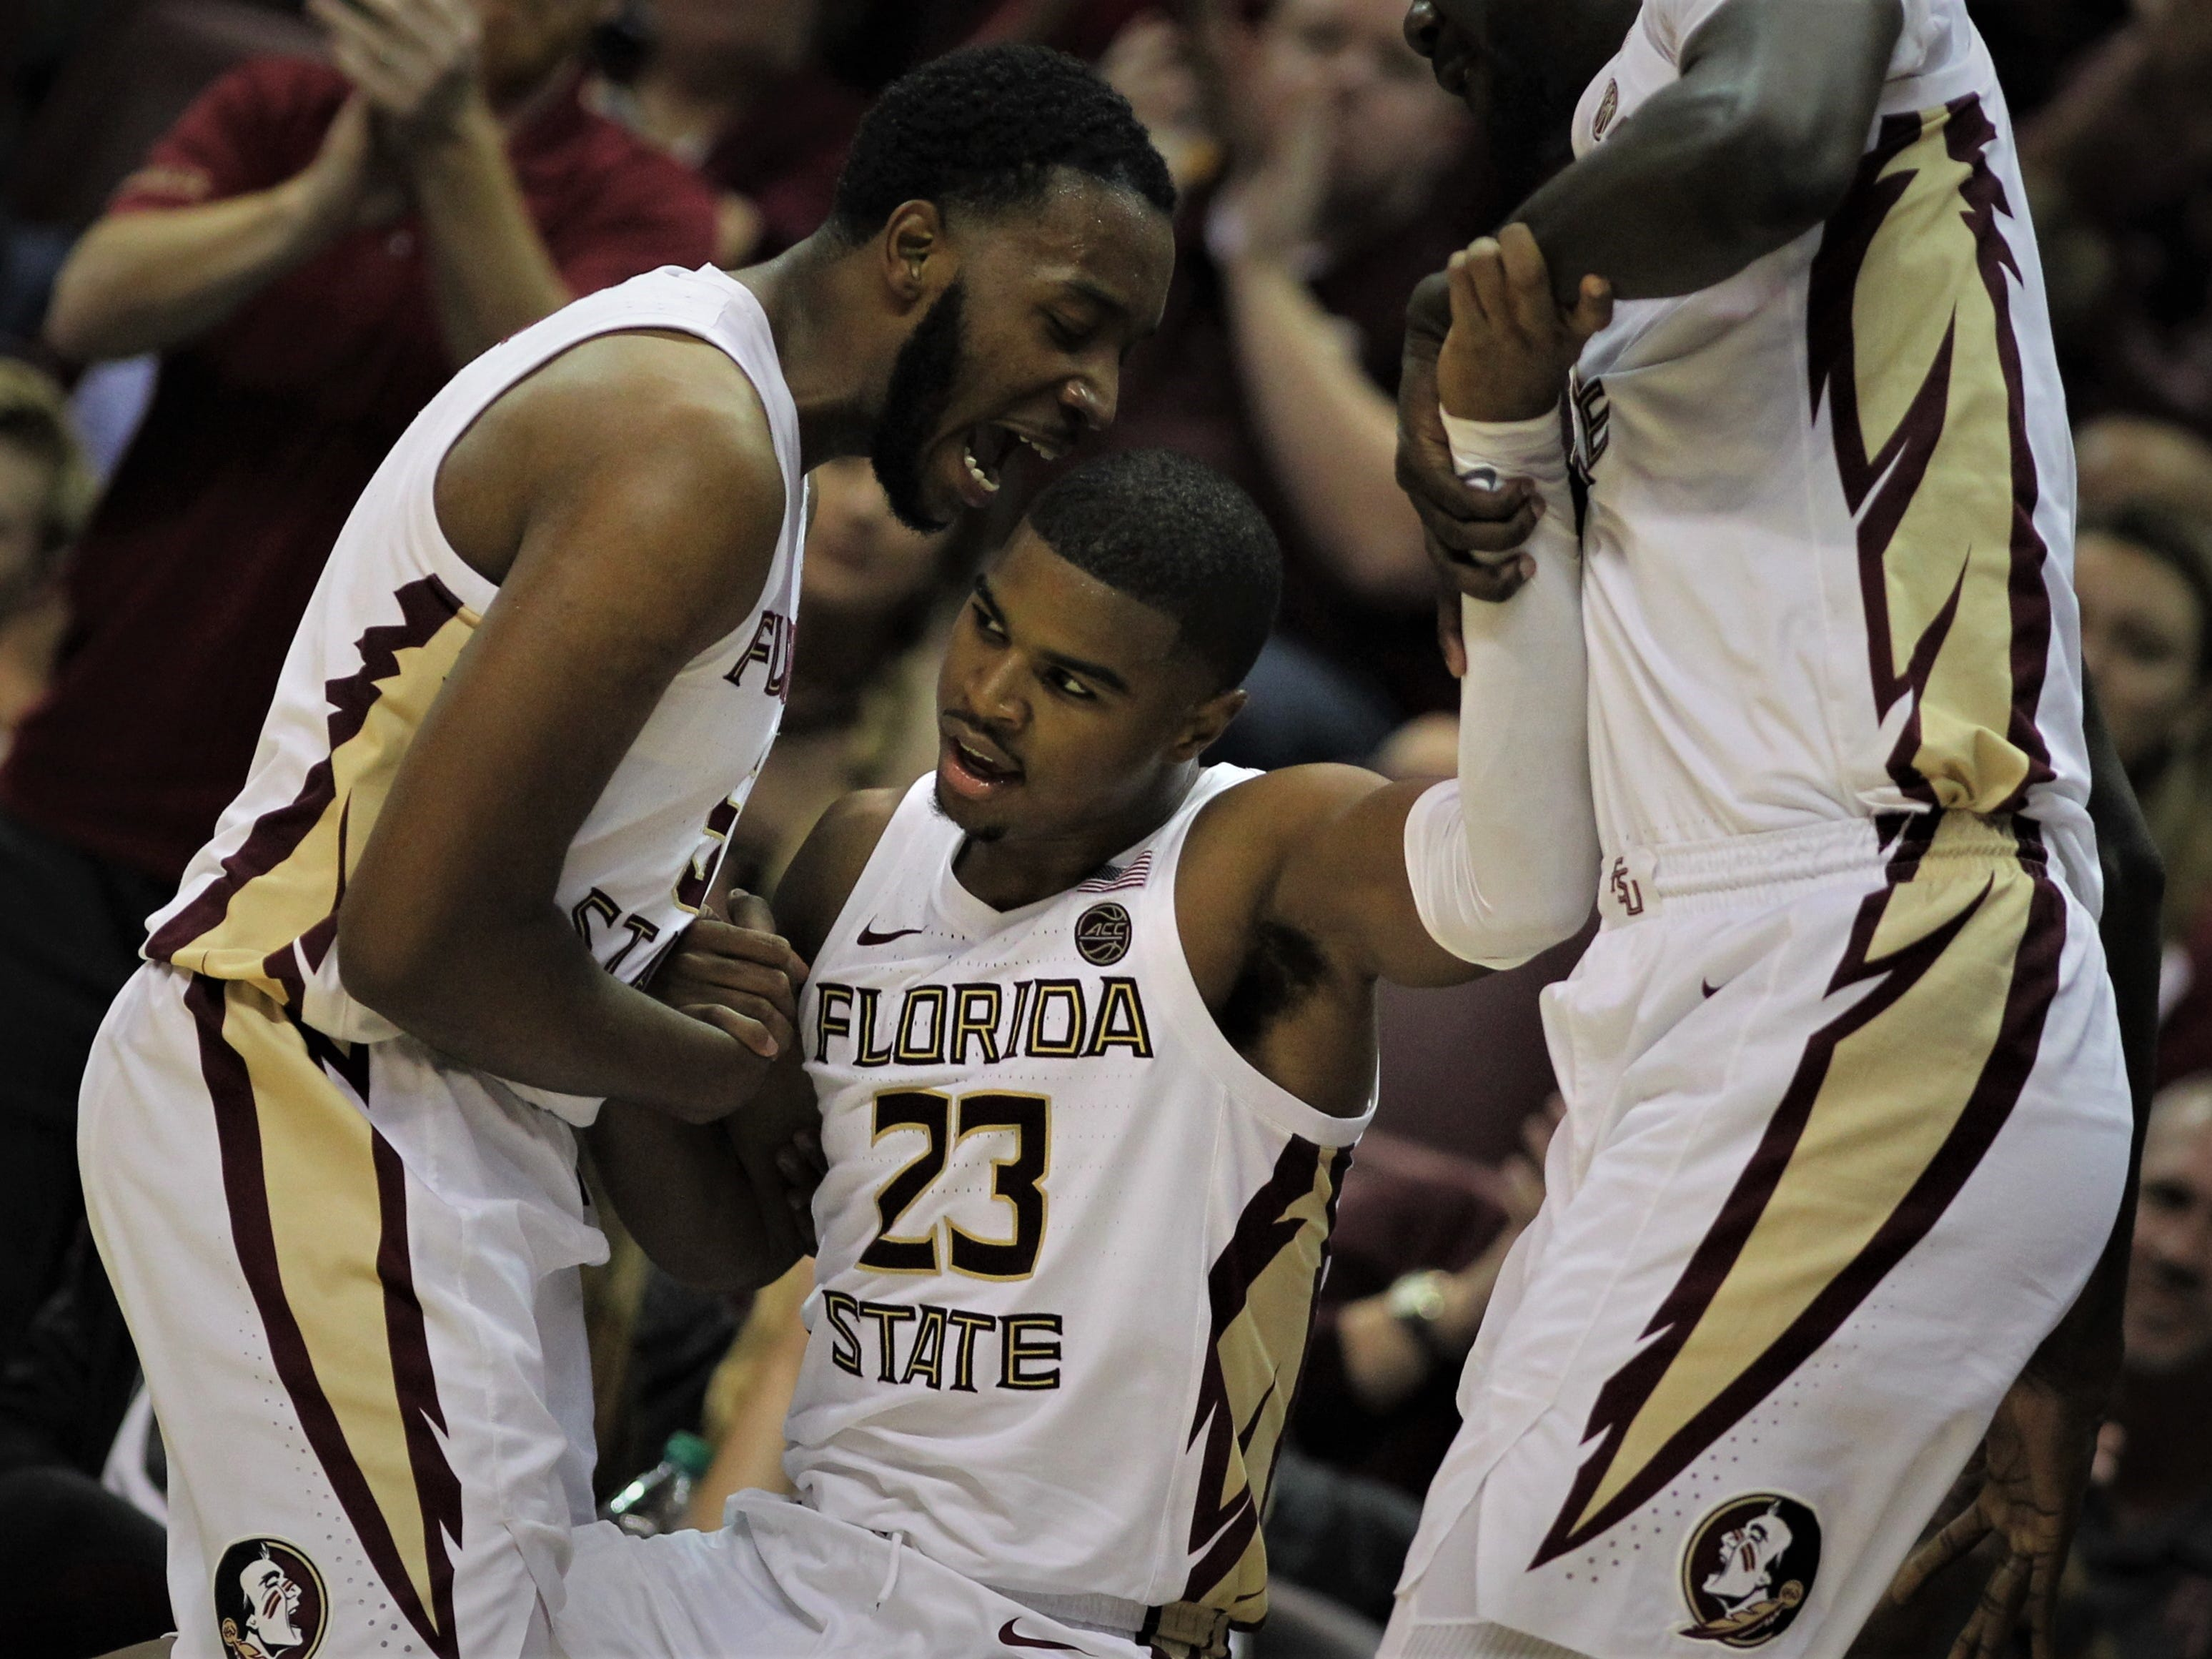 Florida State's M.J. Walker is helped up by P.J. Savoy and Christ Koumadje after making a 3-pointer while getting fouled by Florida during the Sunshine Showdown game Tuesday at the Tucker Civic Center.